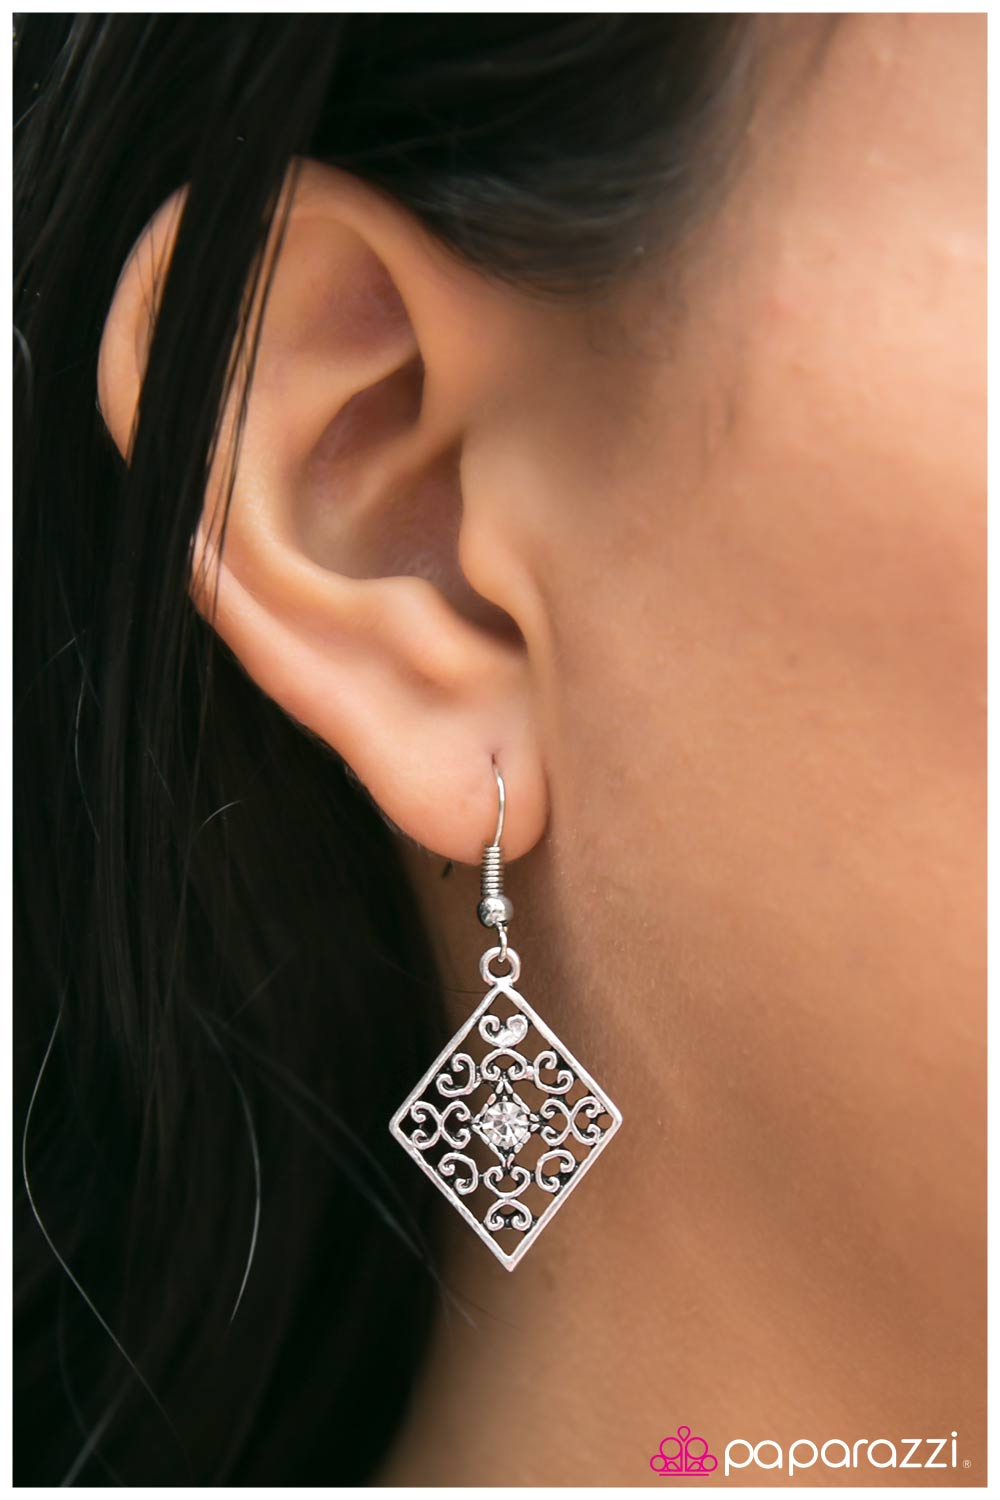 Late Night Rendezvous - white - Paparazzi earrings